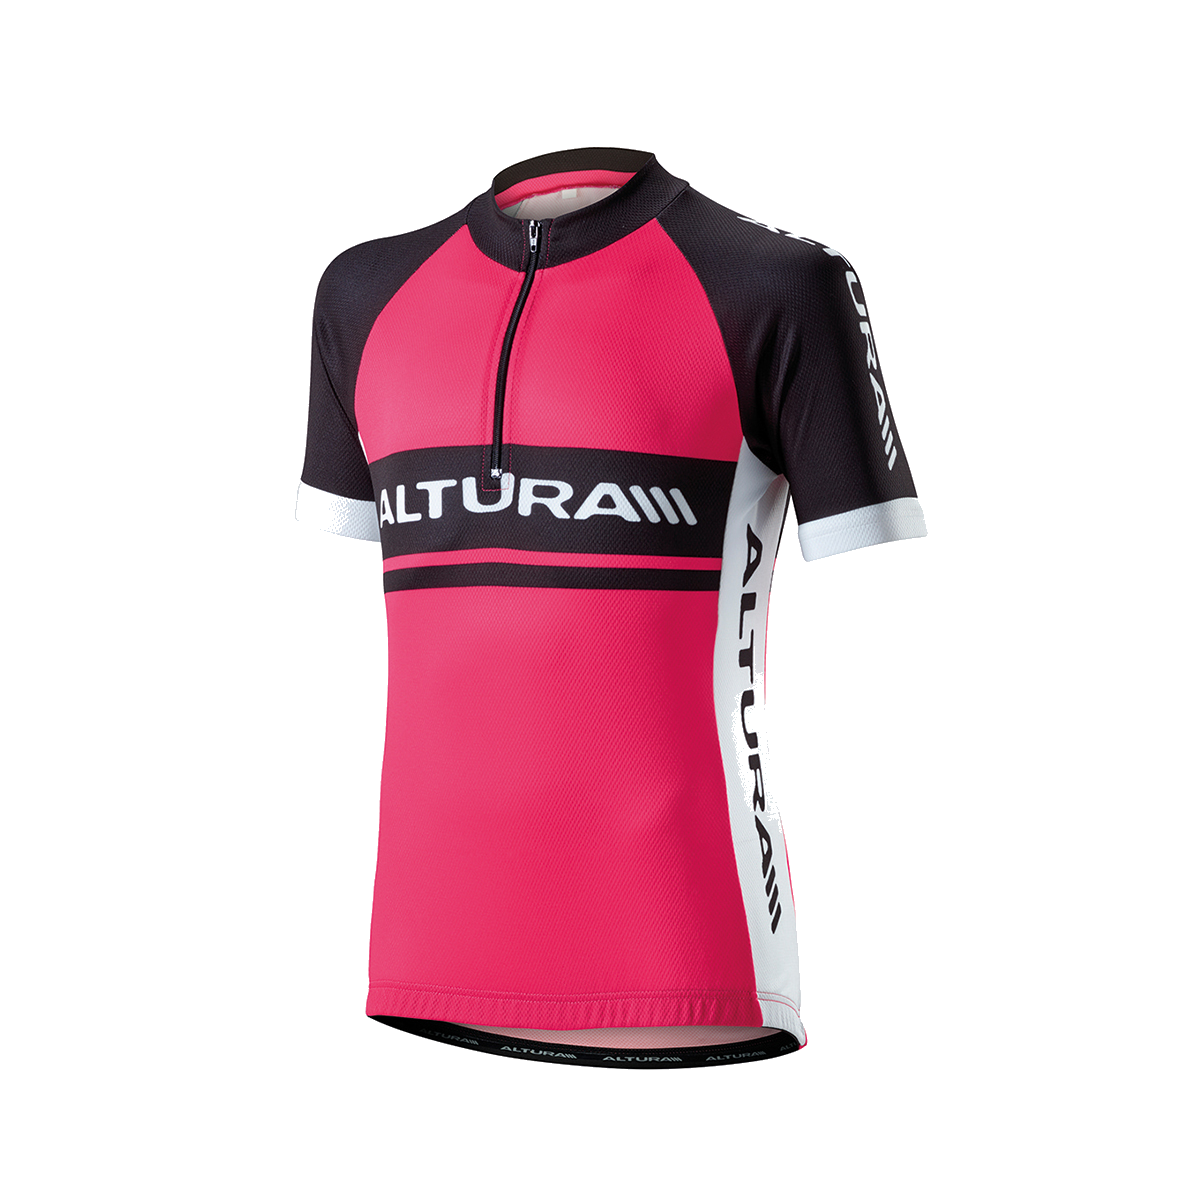 ALTURA CHILDREN'S TEAM SHORT SLEEVE JERSEY 2016: BLUE 10-12YRS